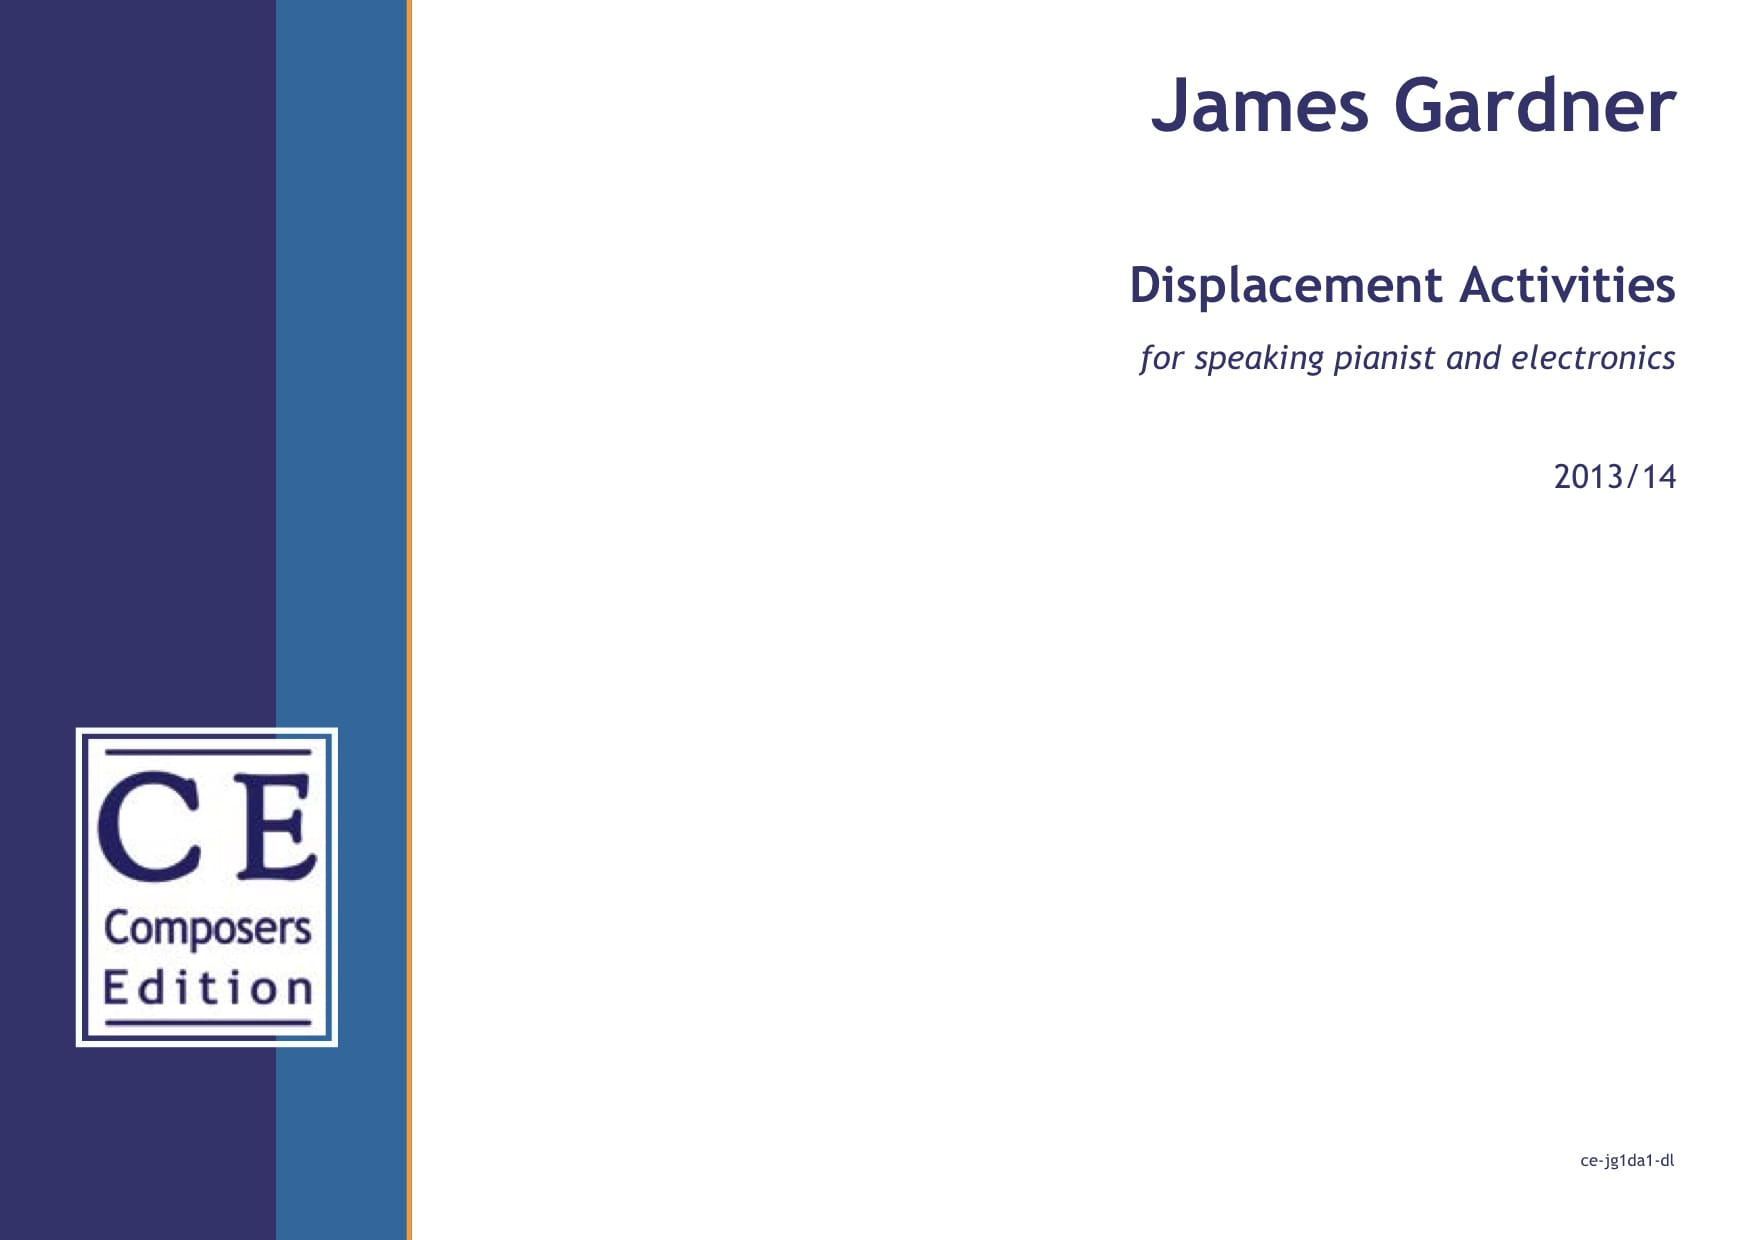 James Gardner: Displacement Activities for speaking pianist and electronics